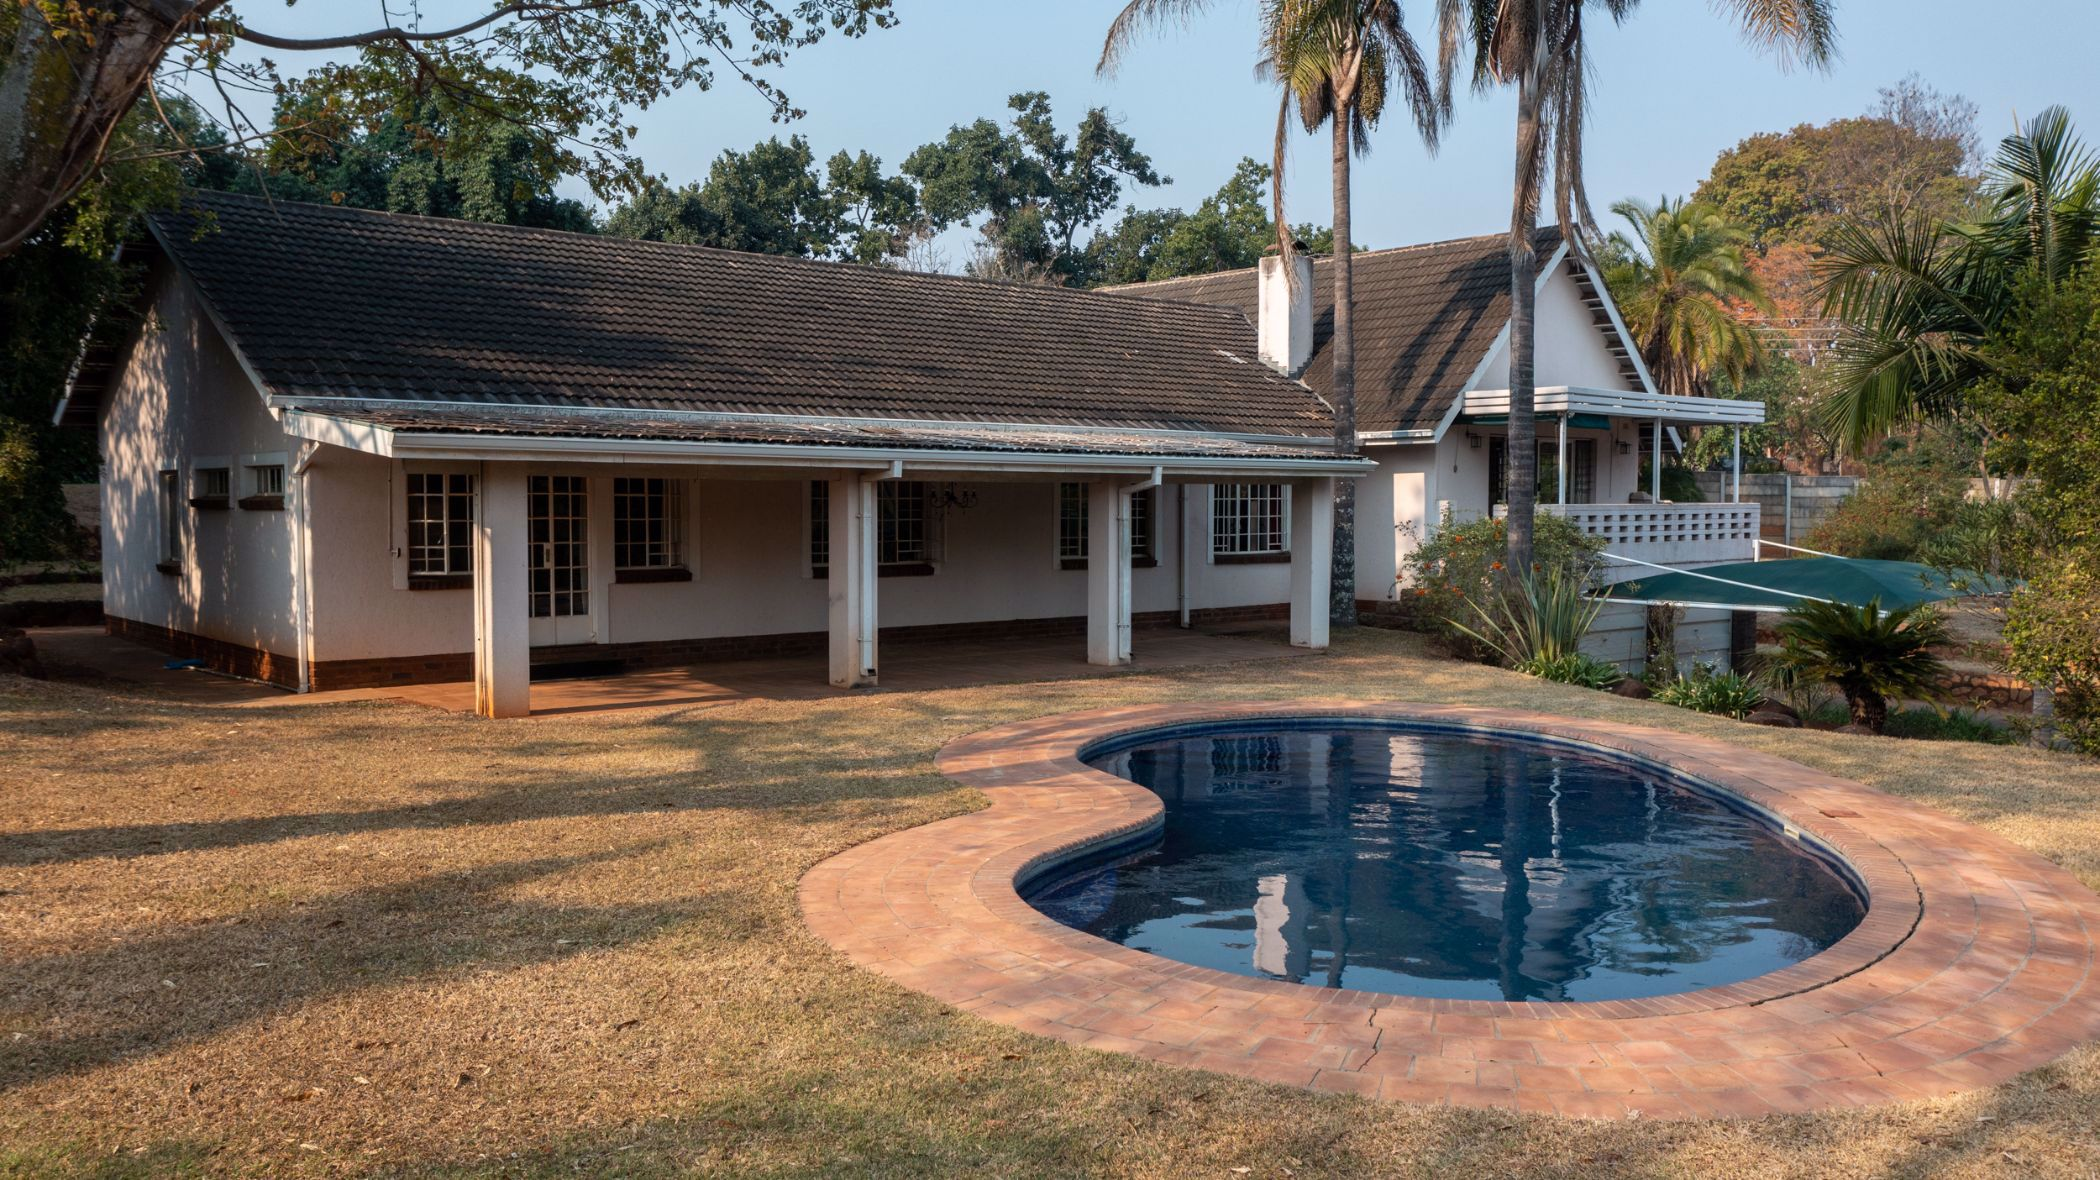 4 bedroom house for sale in Greystone Park (Zimbabwe)